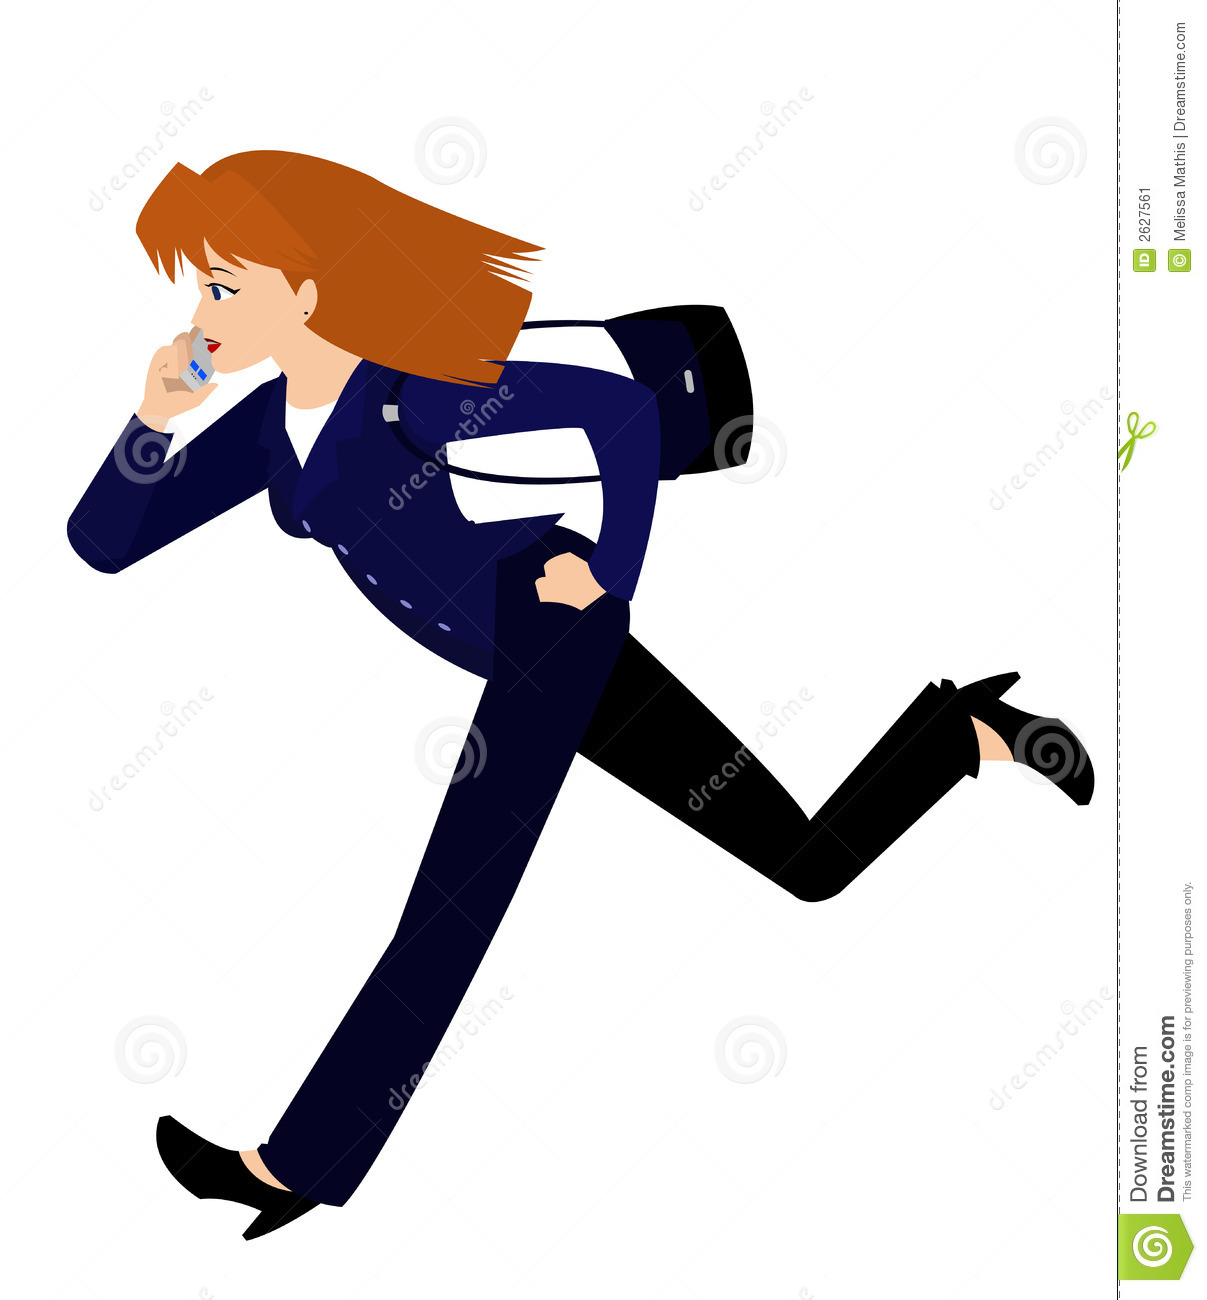 Lady with red orange hair wearing a blue business suit and carrying